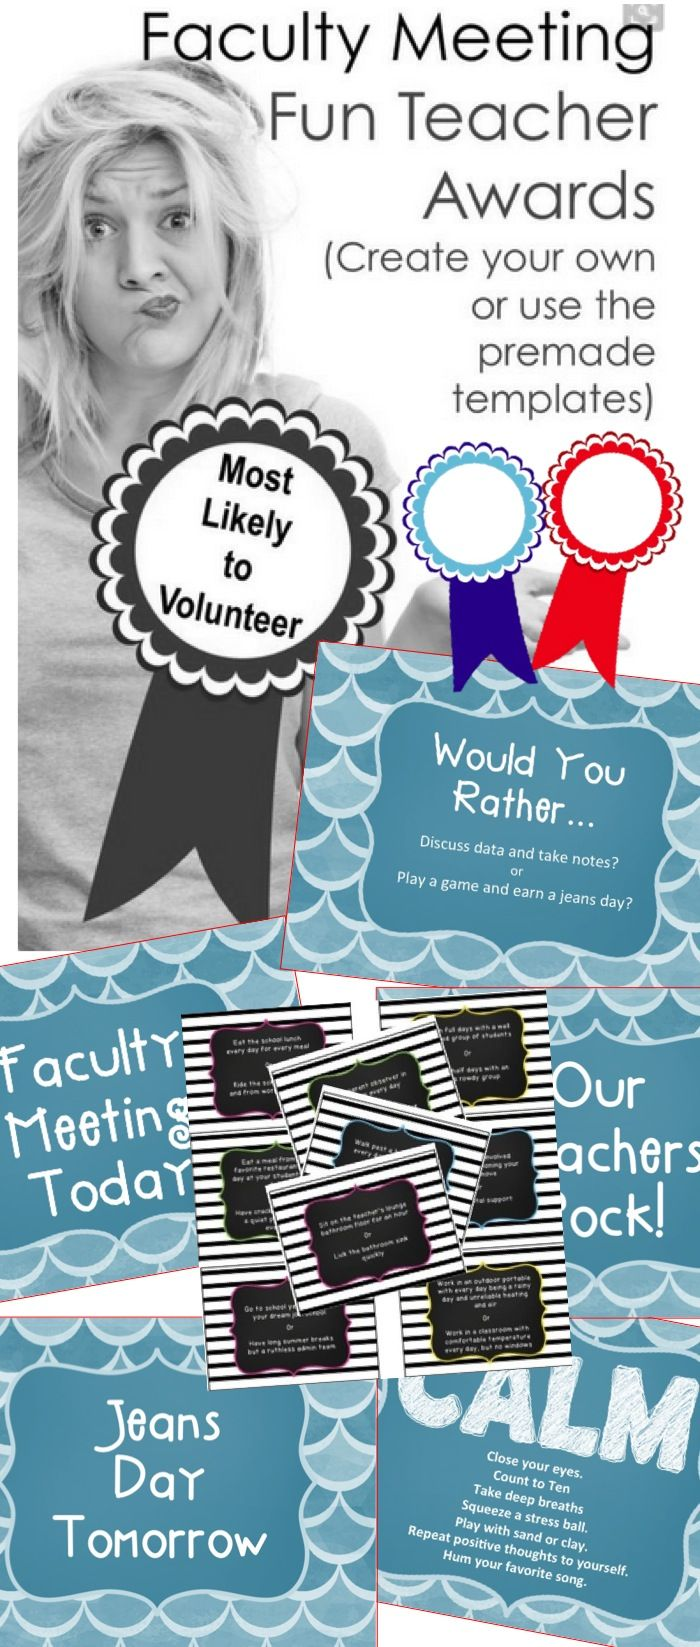 "un custom questions for teachers. Faculty ""Would You Rather"" Game for faculty meeting fun and stress relief. Plus Funny (or serious) Teacher Awards for Staff Meetings.  Some examples from the Would You Rather game:  Eat the school lunch every day for every meal during the week or Ride the school bus with your students to and from work every day  Eat a meal from your favorite restaurant every day at the lunch table with your students all year"